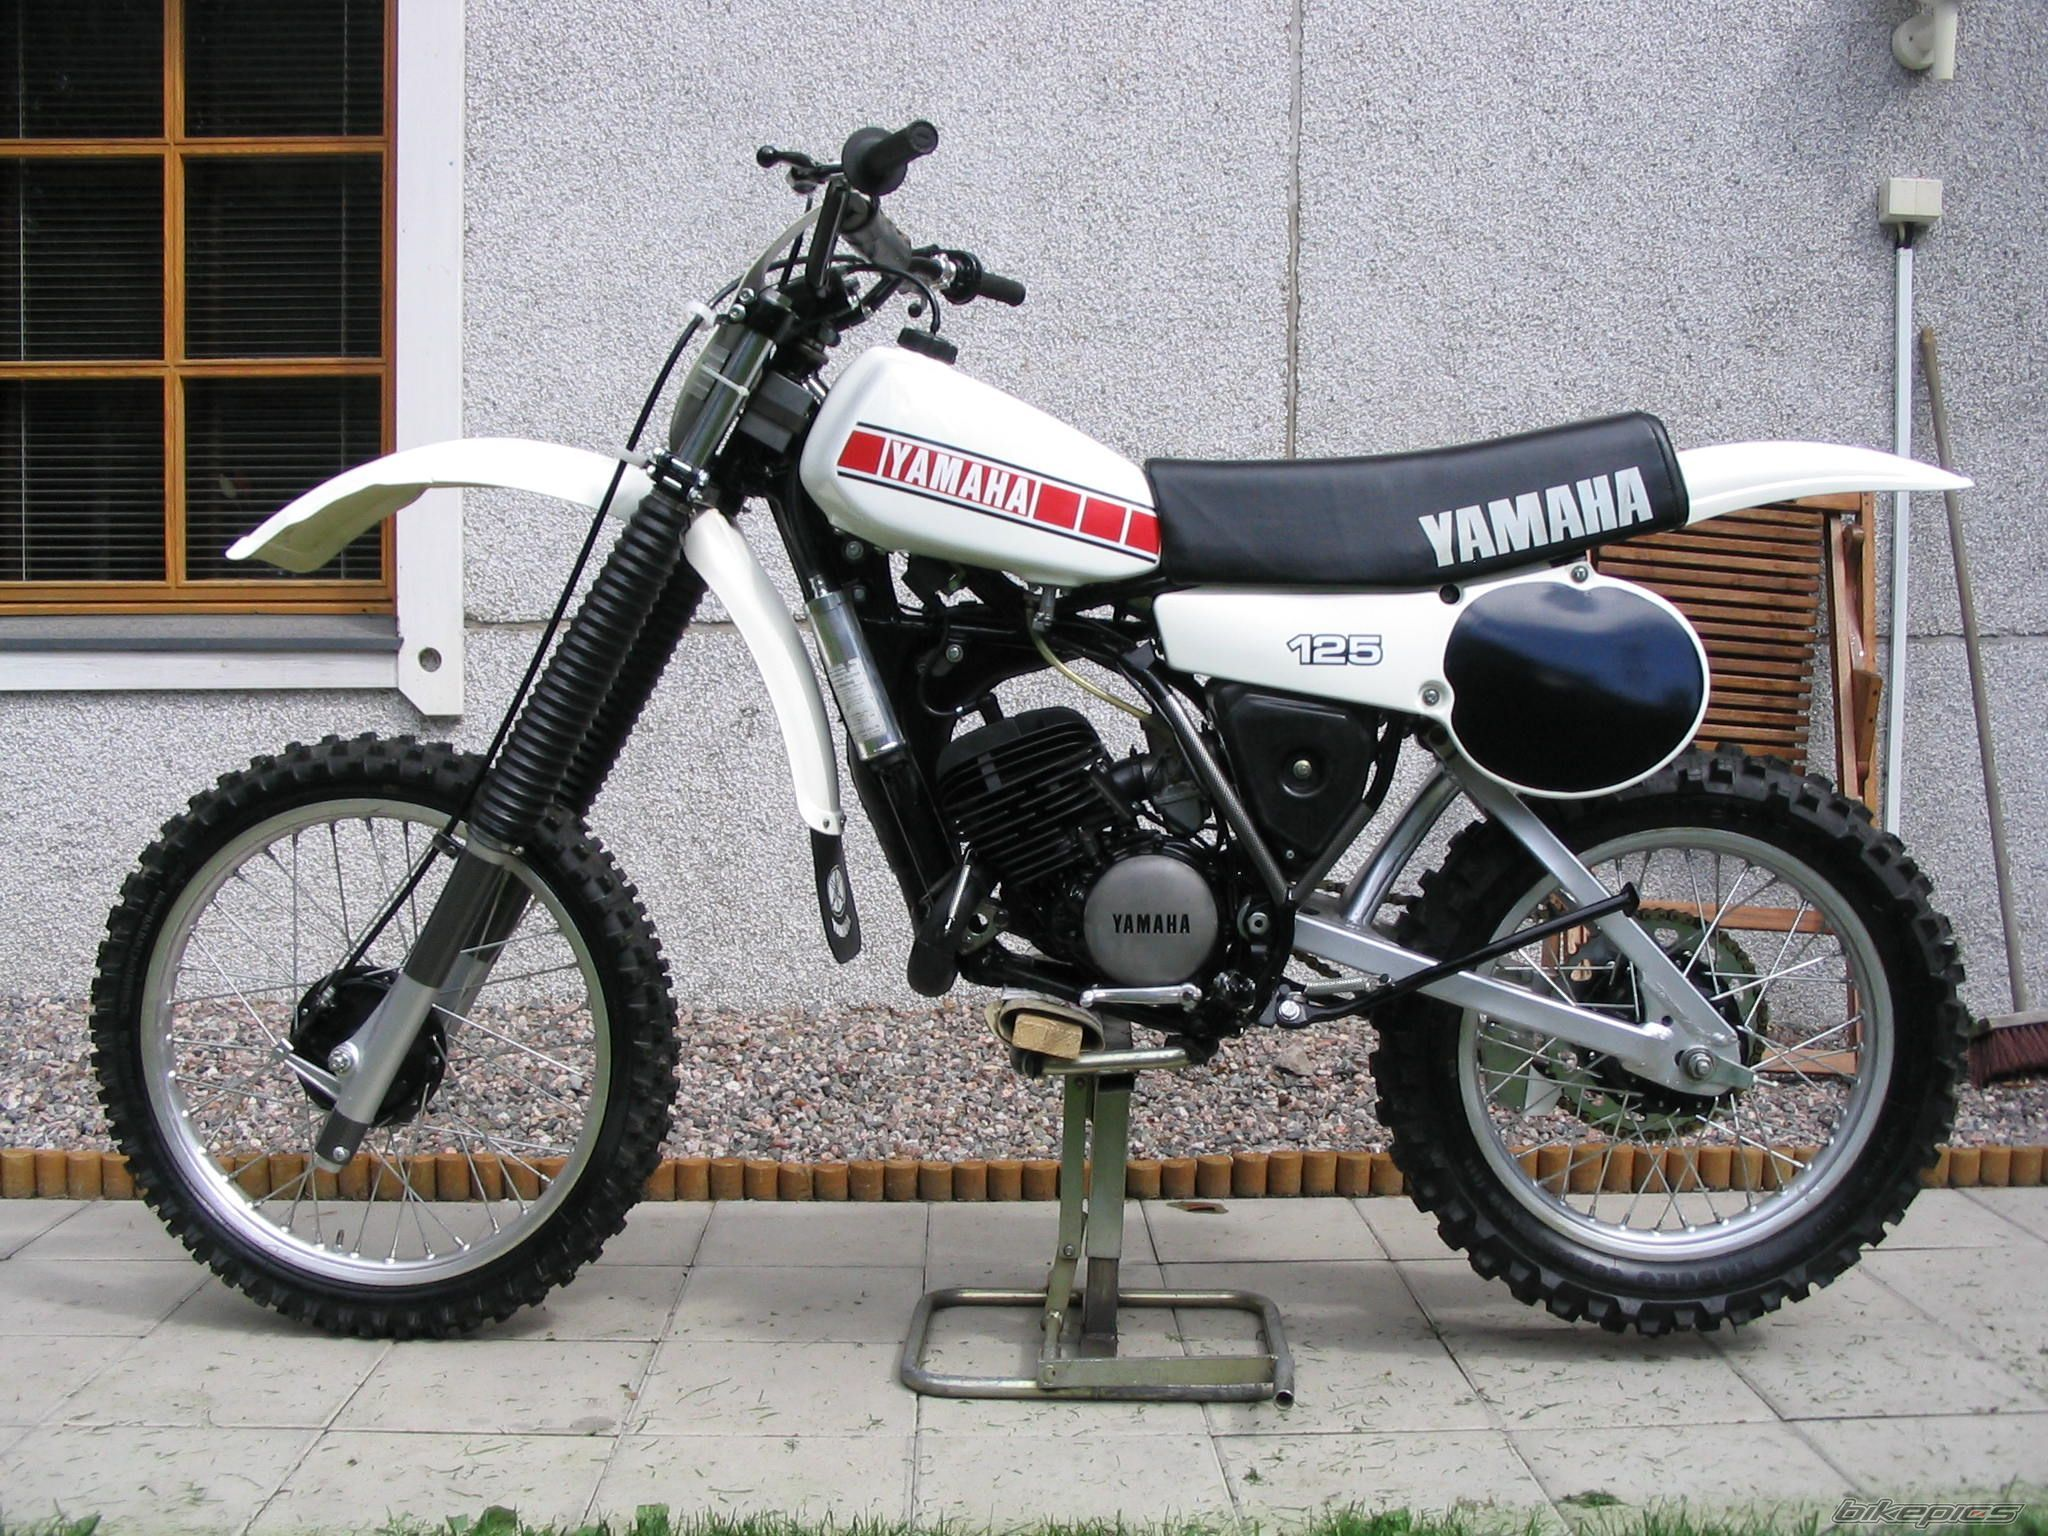 yamaha motorcycles yz forsale vintage